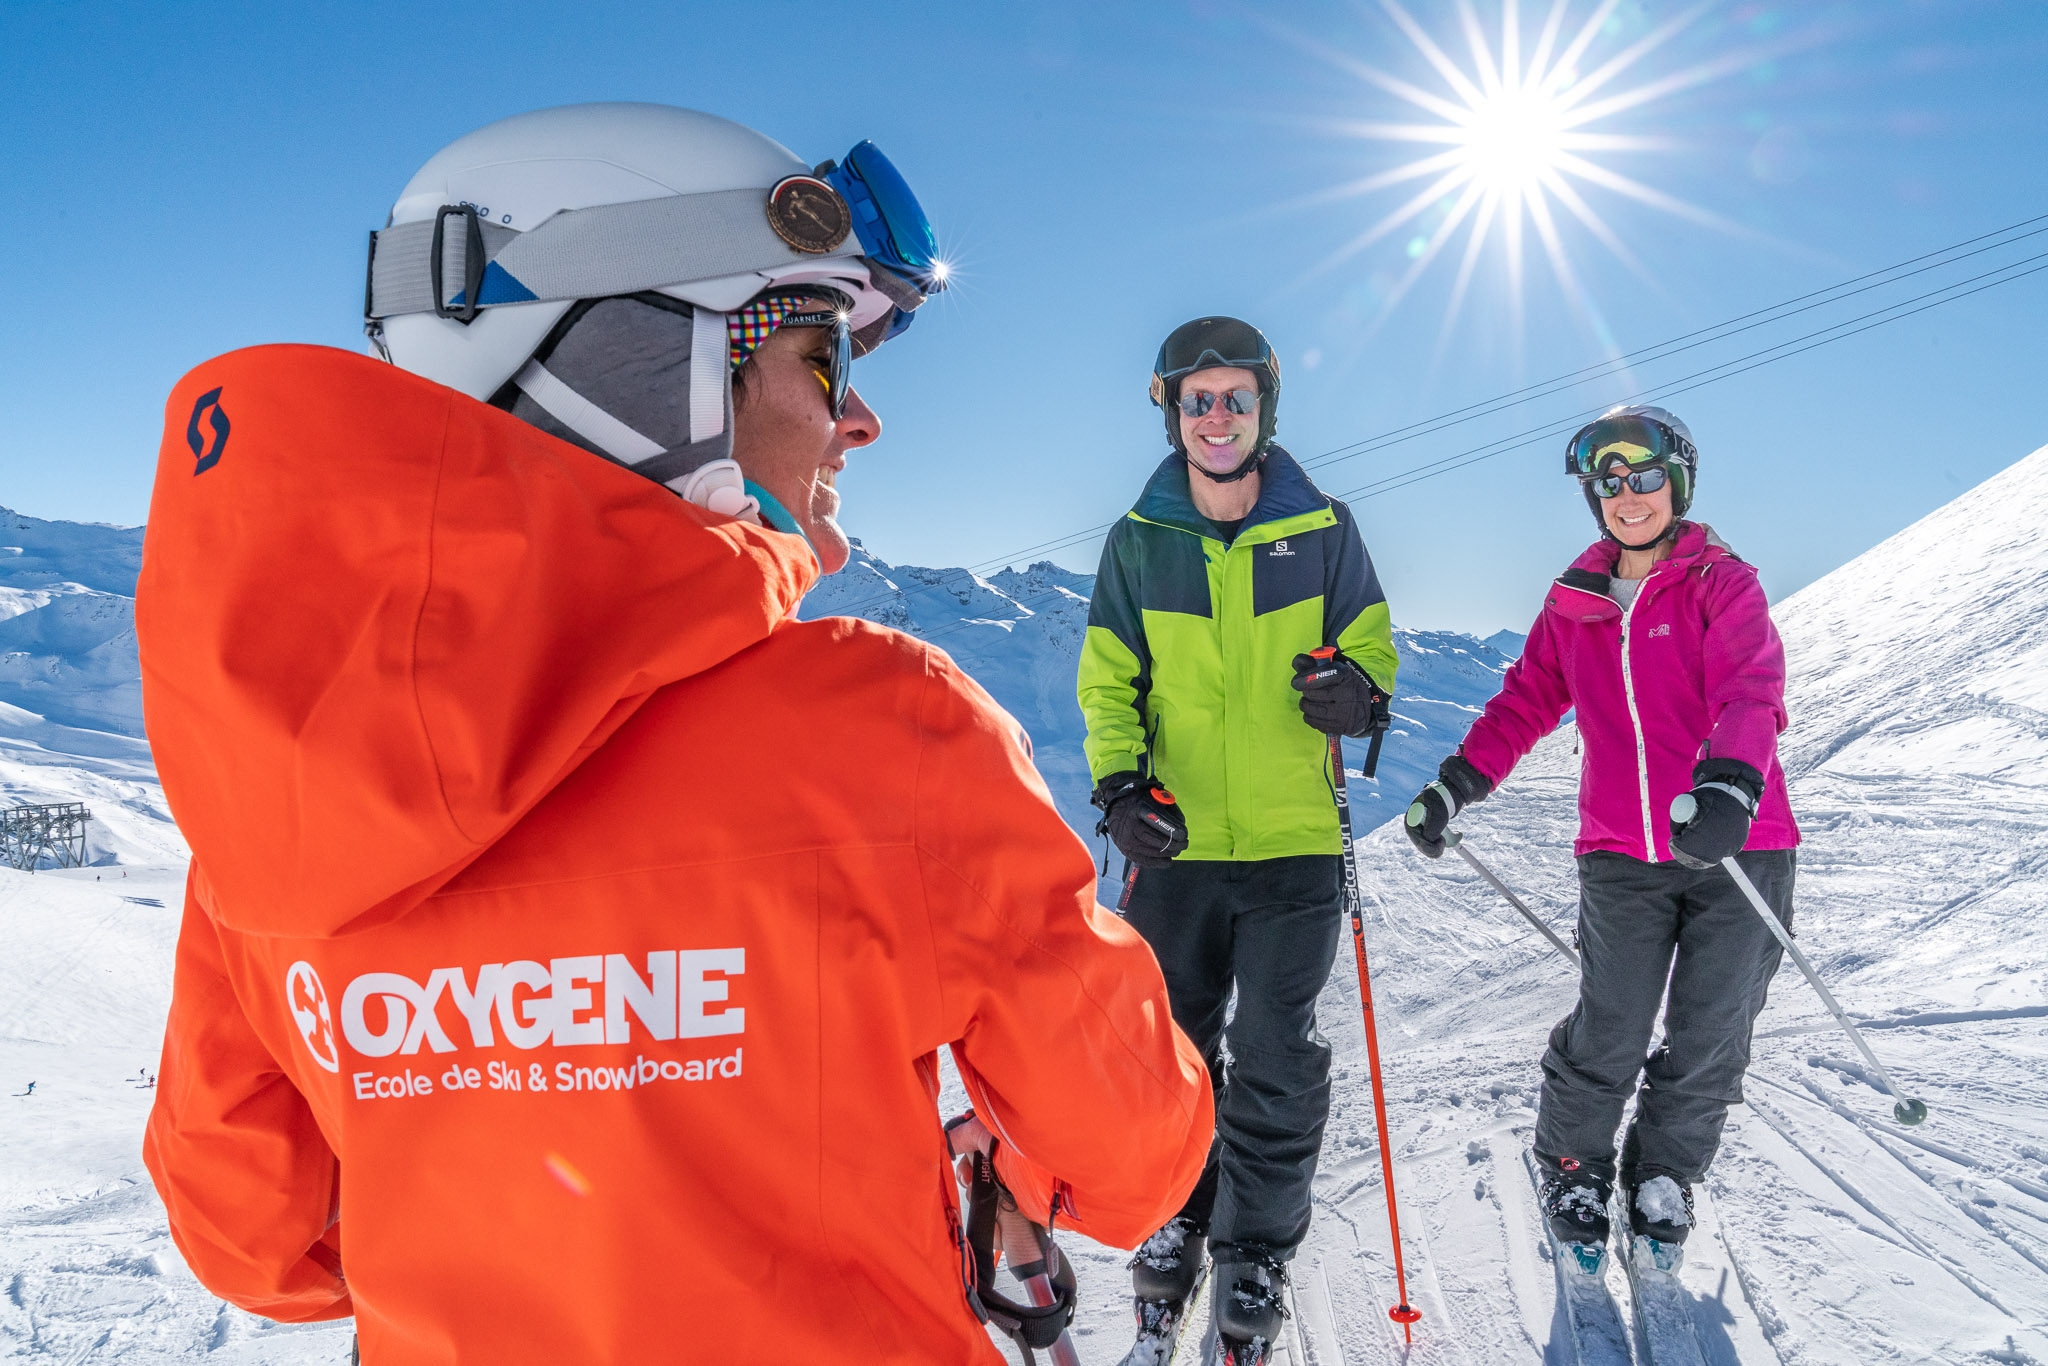 Oxygene ski instructors skiing with her students - 2019